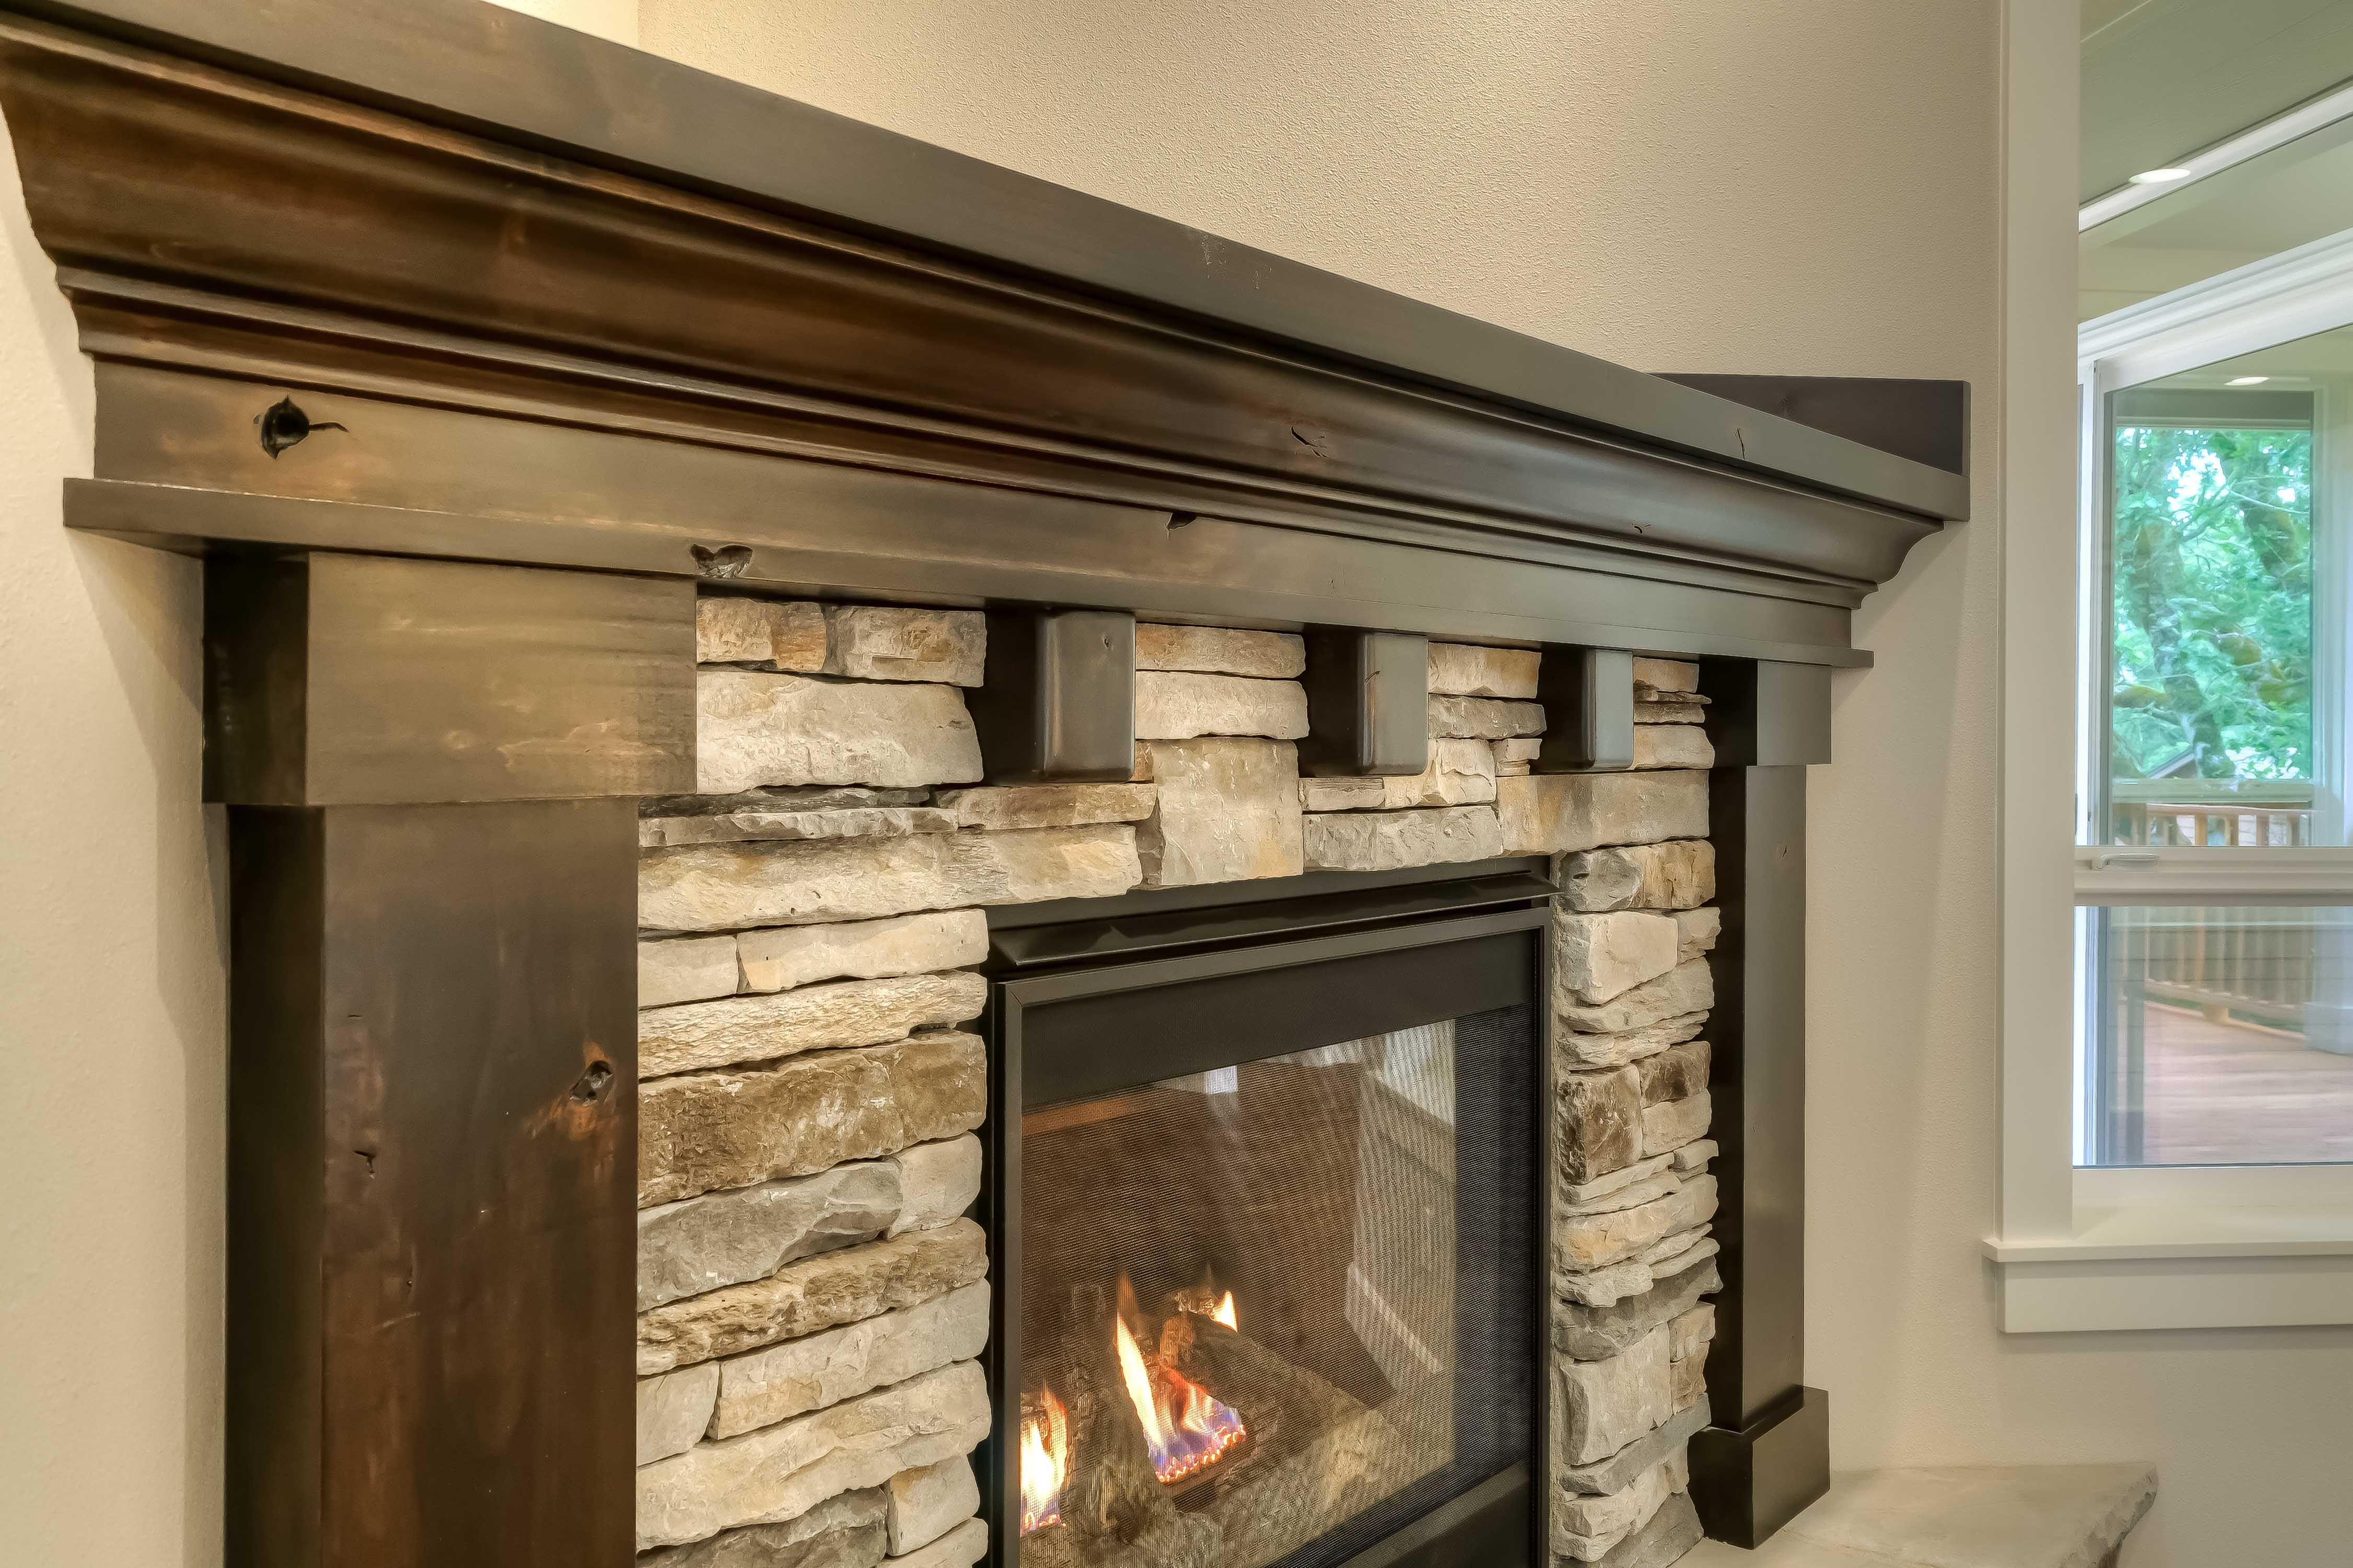 Lot 10 Fireplace